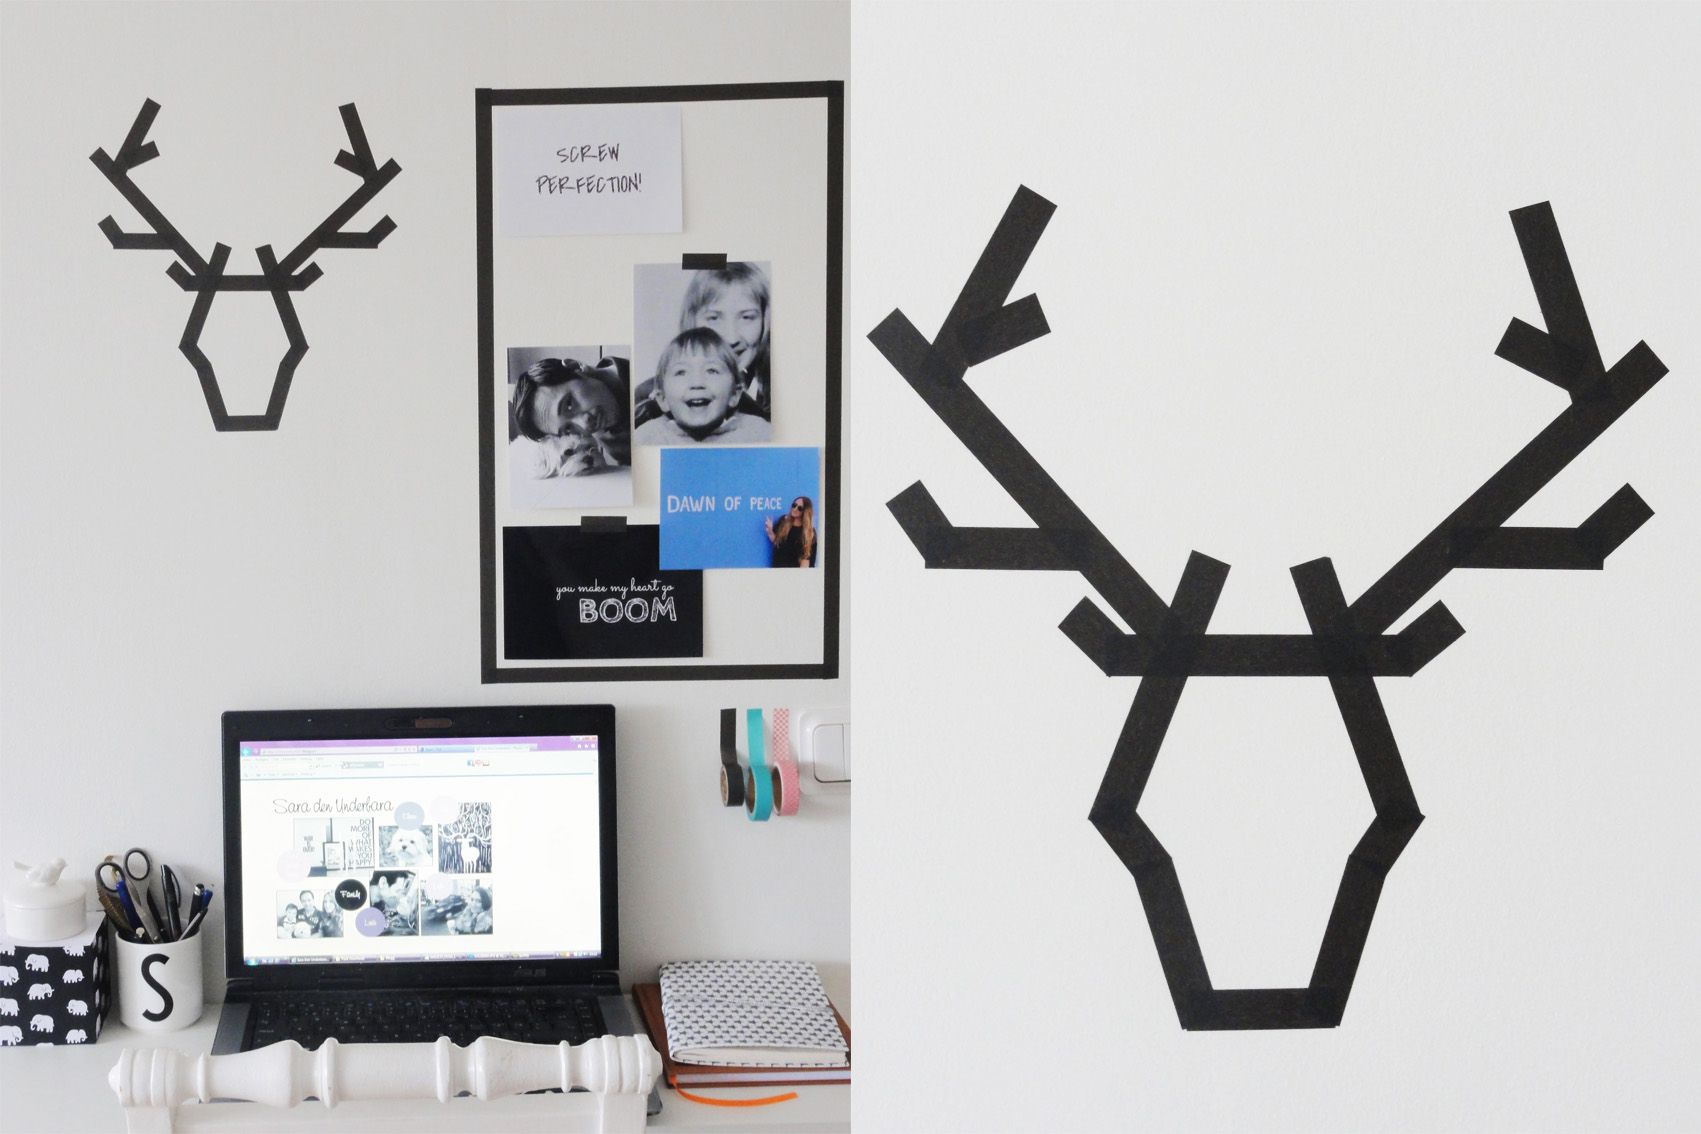 My small desk space - moodboard and deer made with washi tape